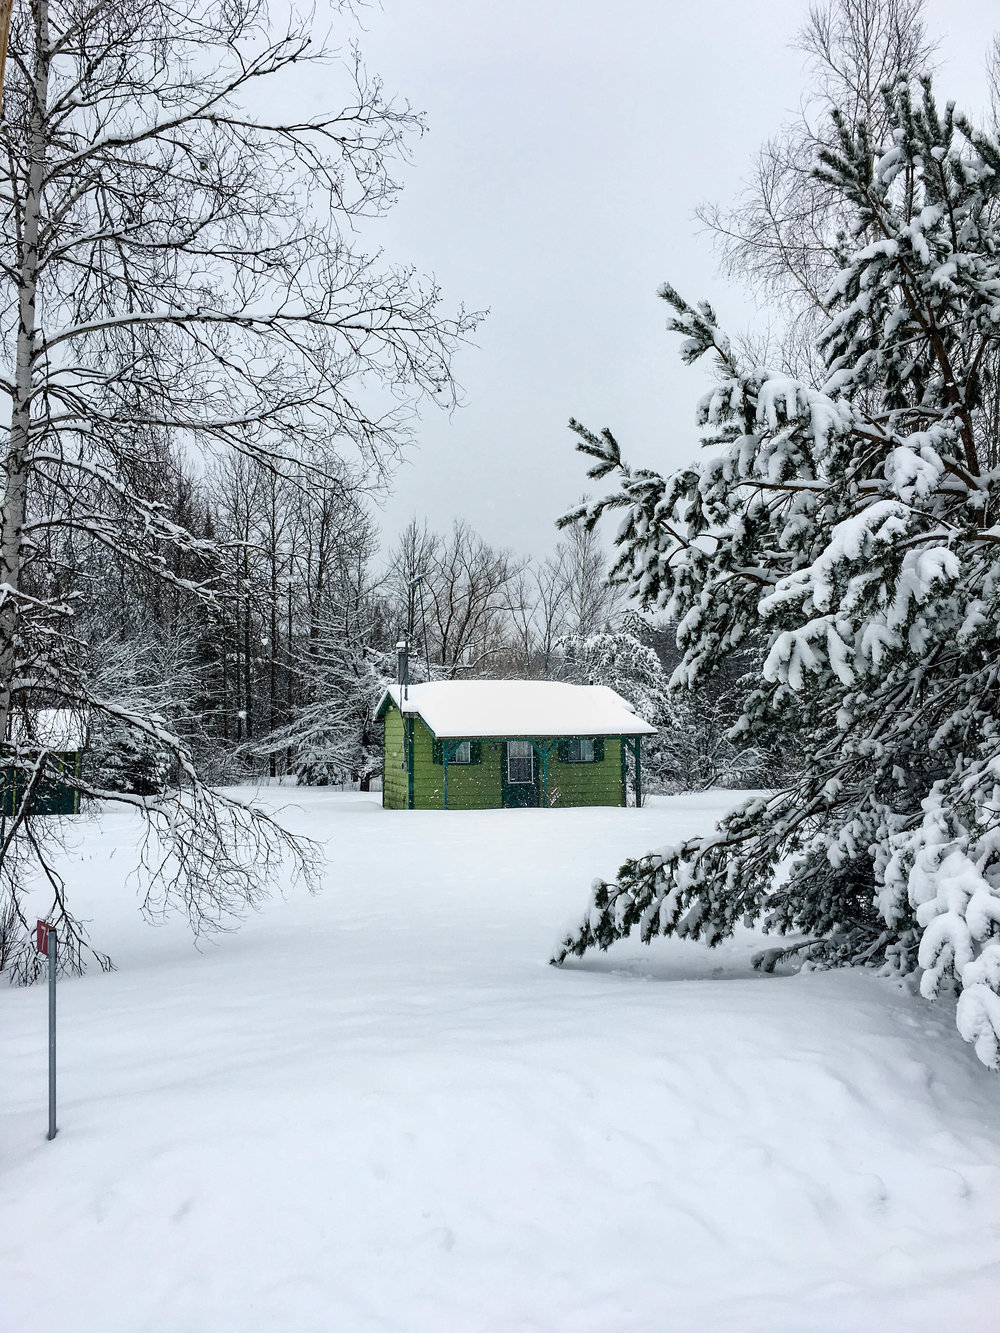 Walk in the mountains in Coaticook. There is a small green cabin in the middle of the forest with snow